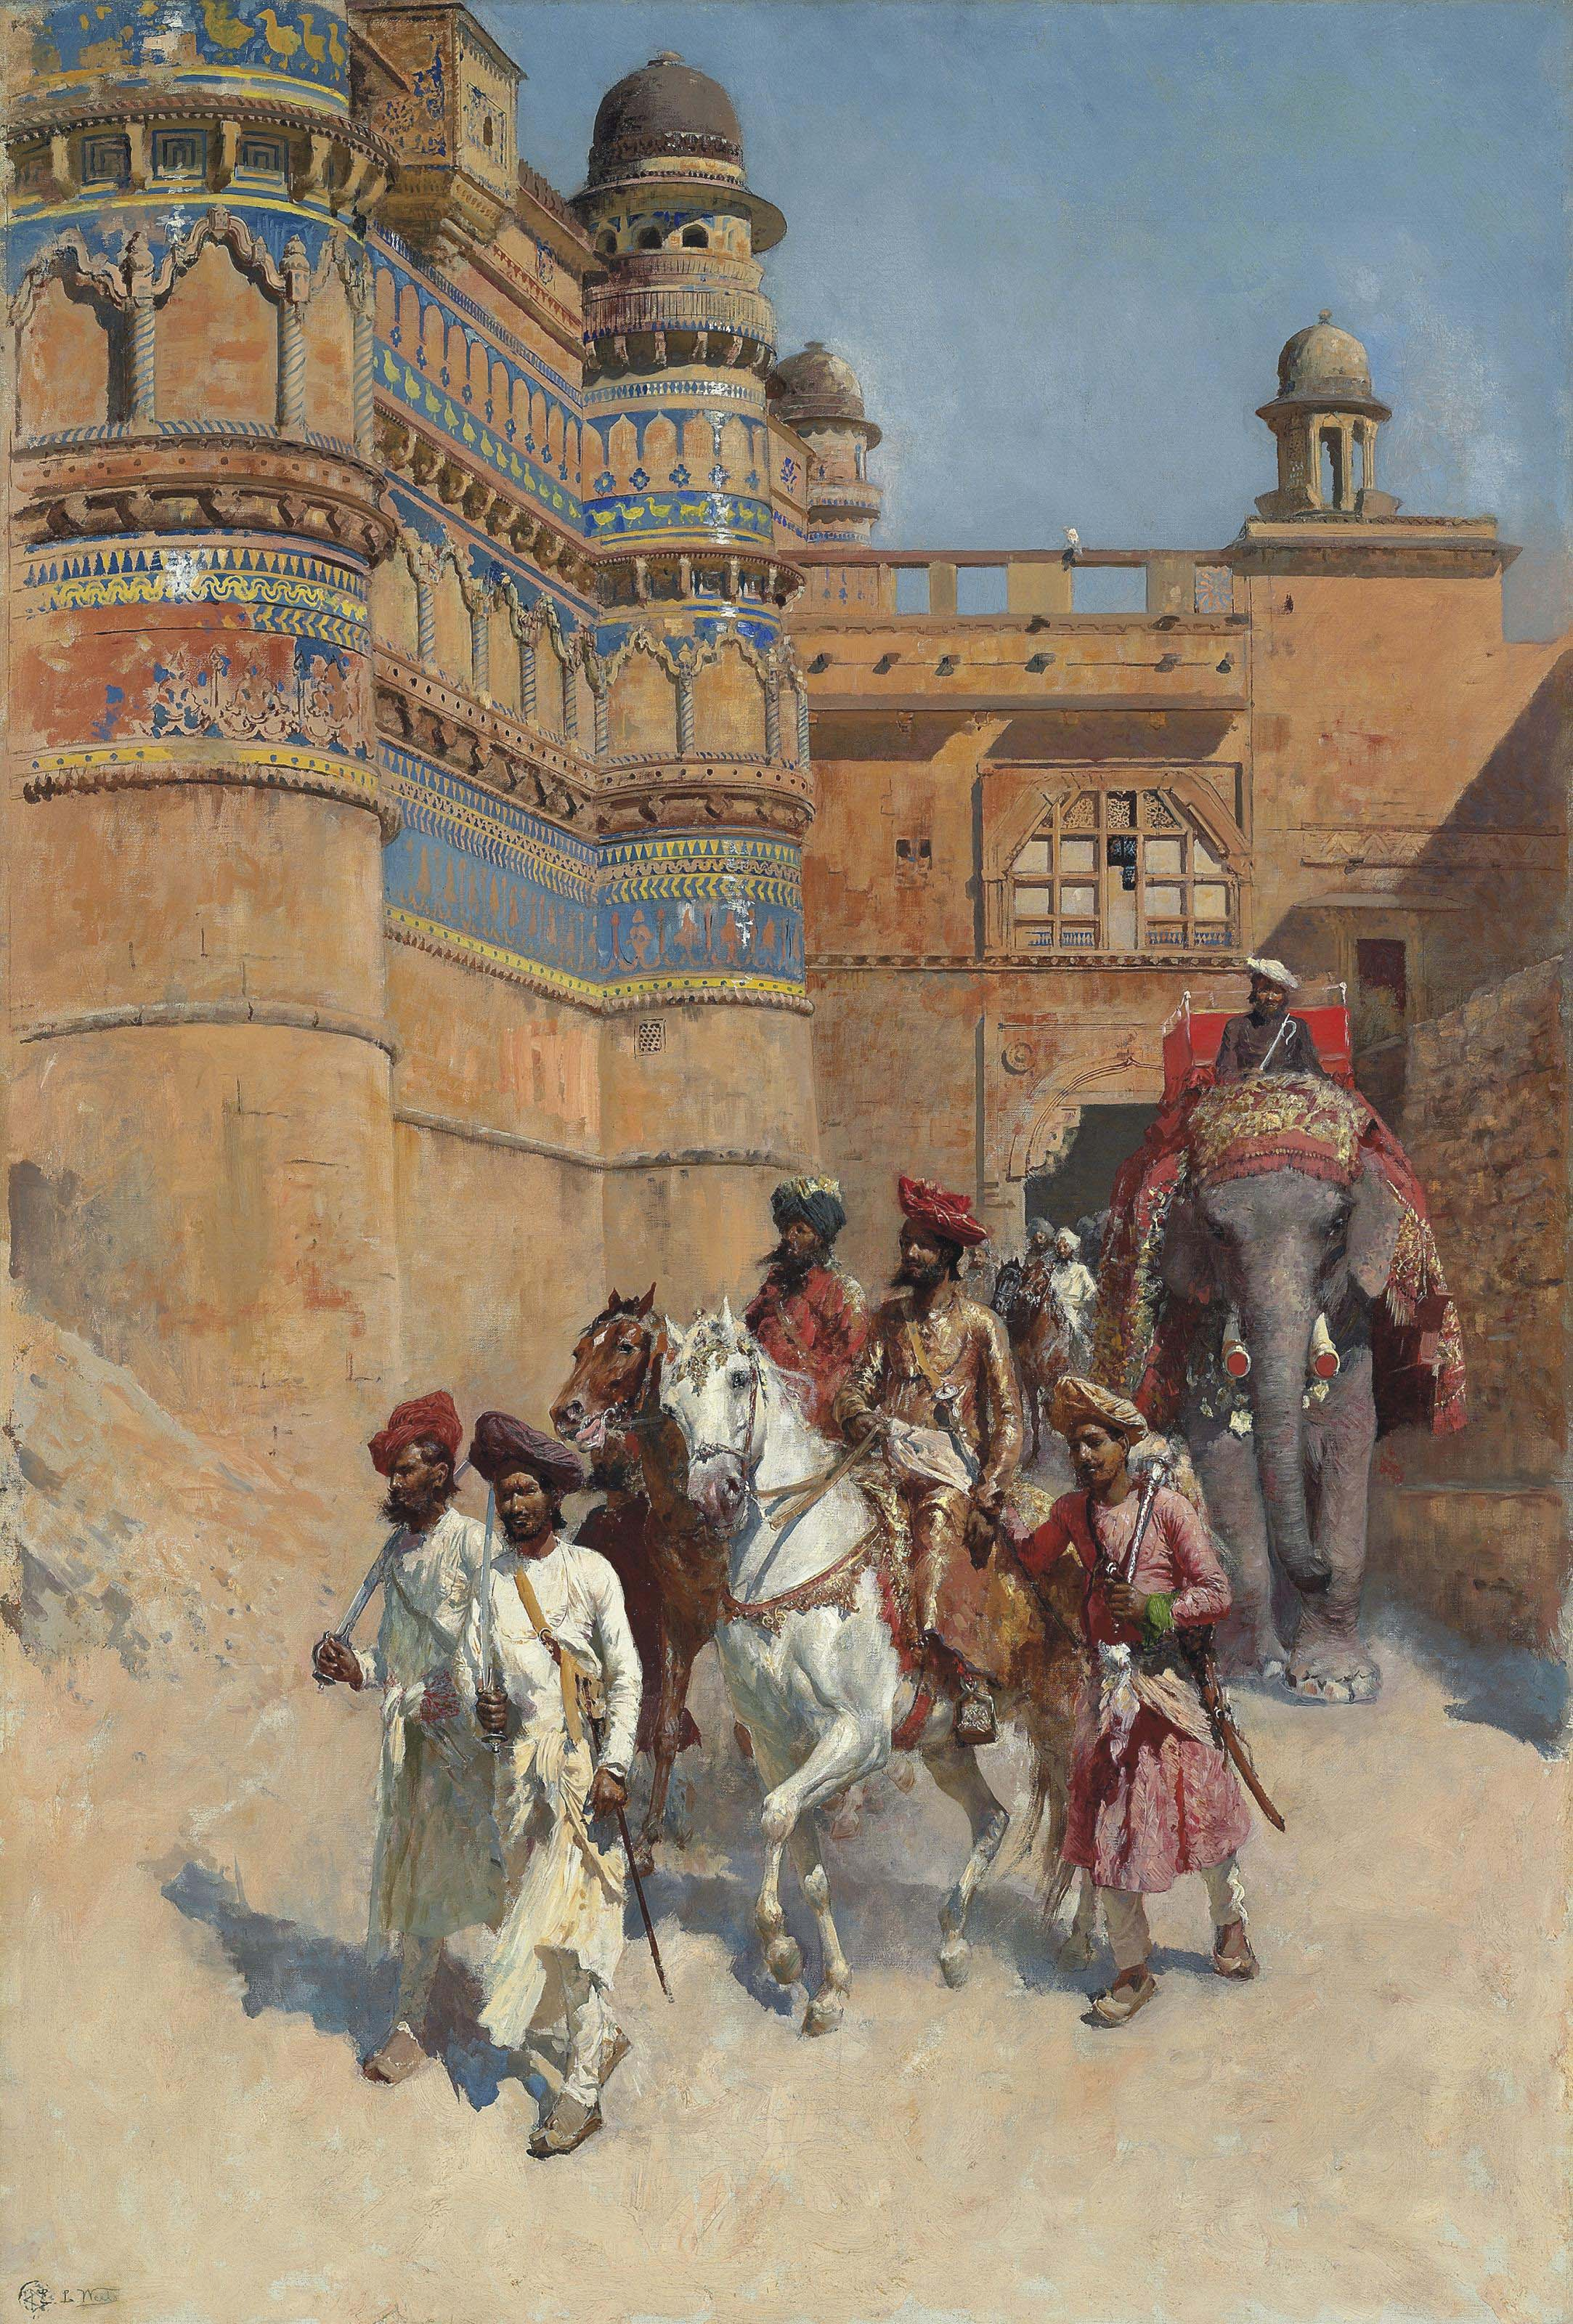 Edwin Lord Weeks (American, 18